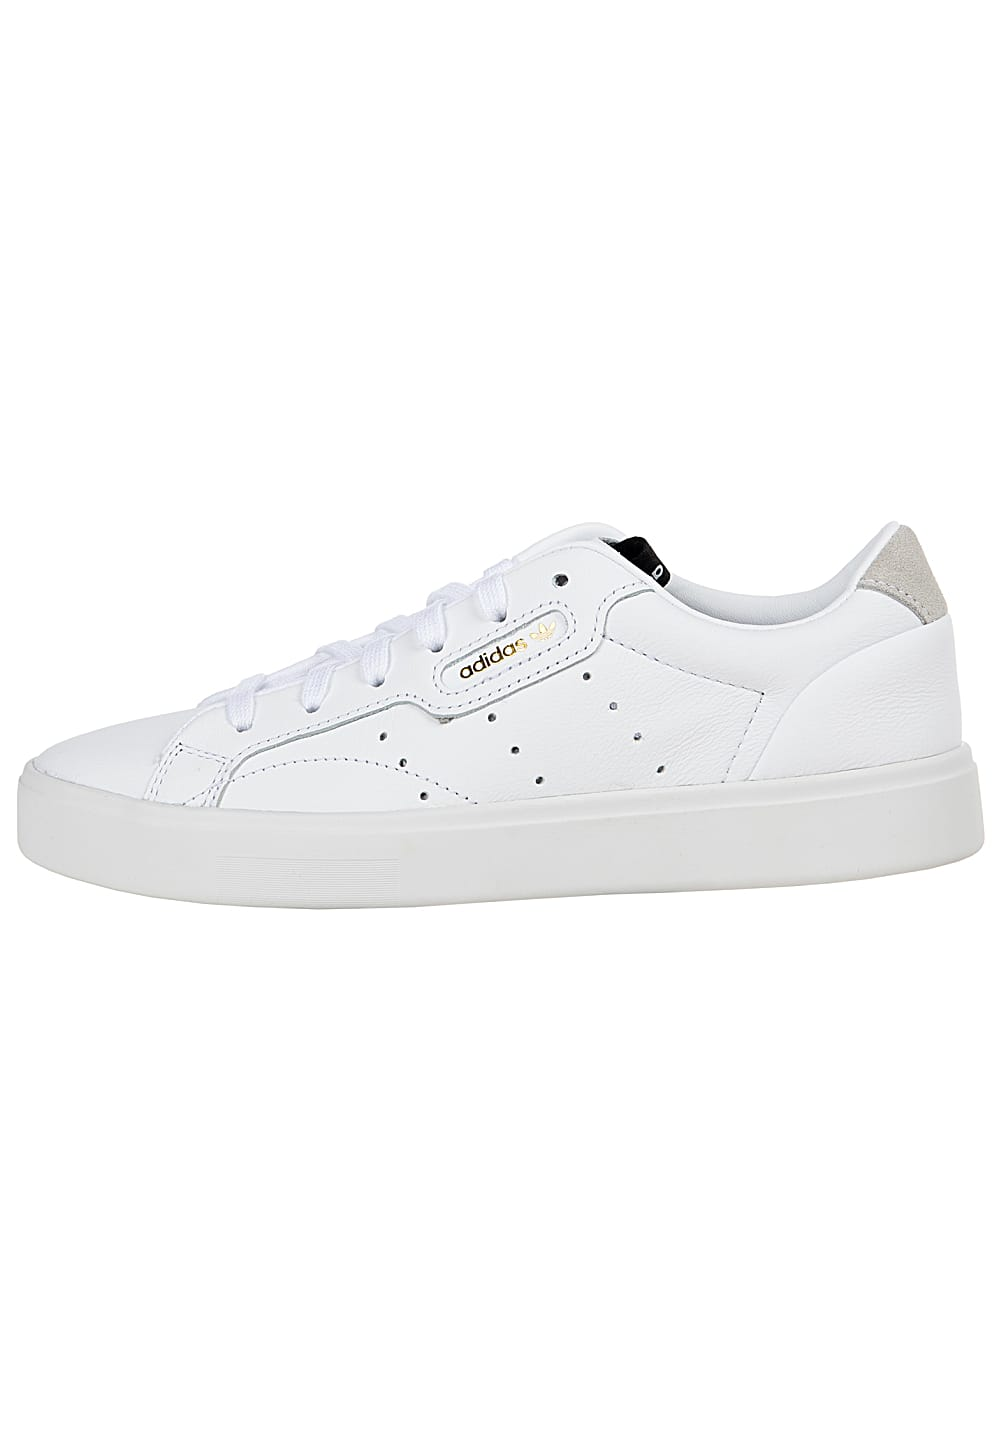 adidas Originals Sleek Sneaker für Damen Weiß Planet